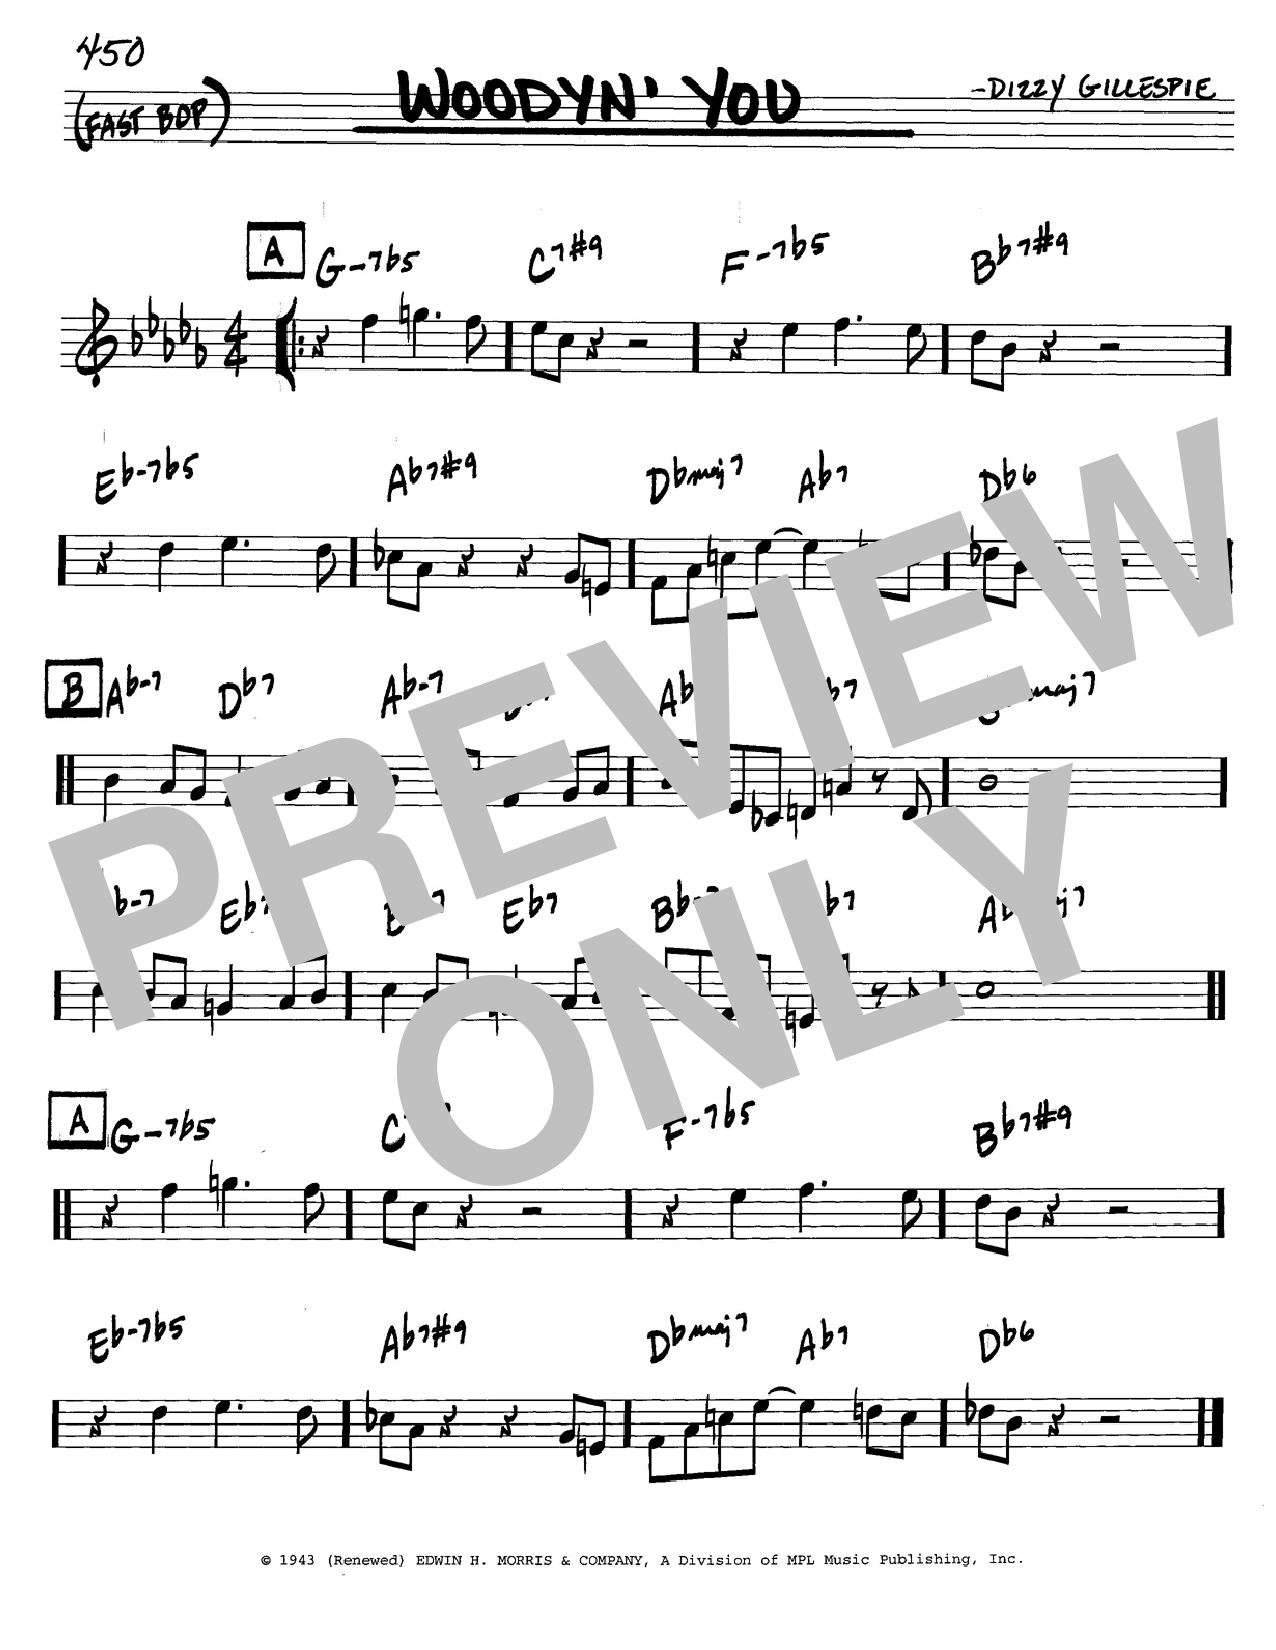 Dizzy Gillespie Woodyn' You sheet music notes and chords